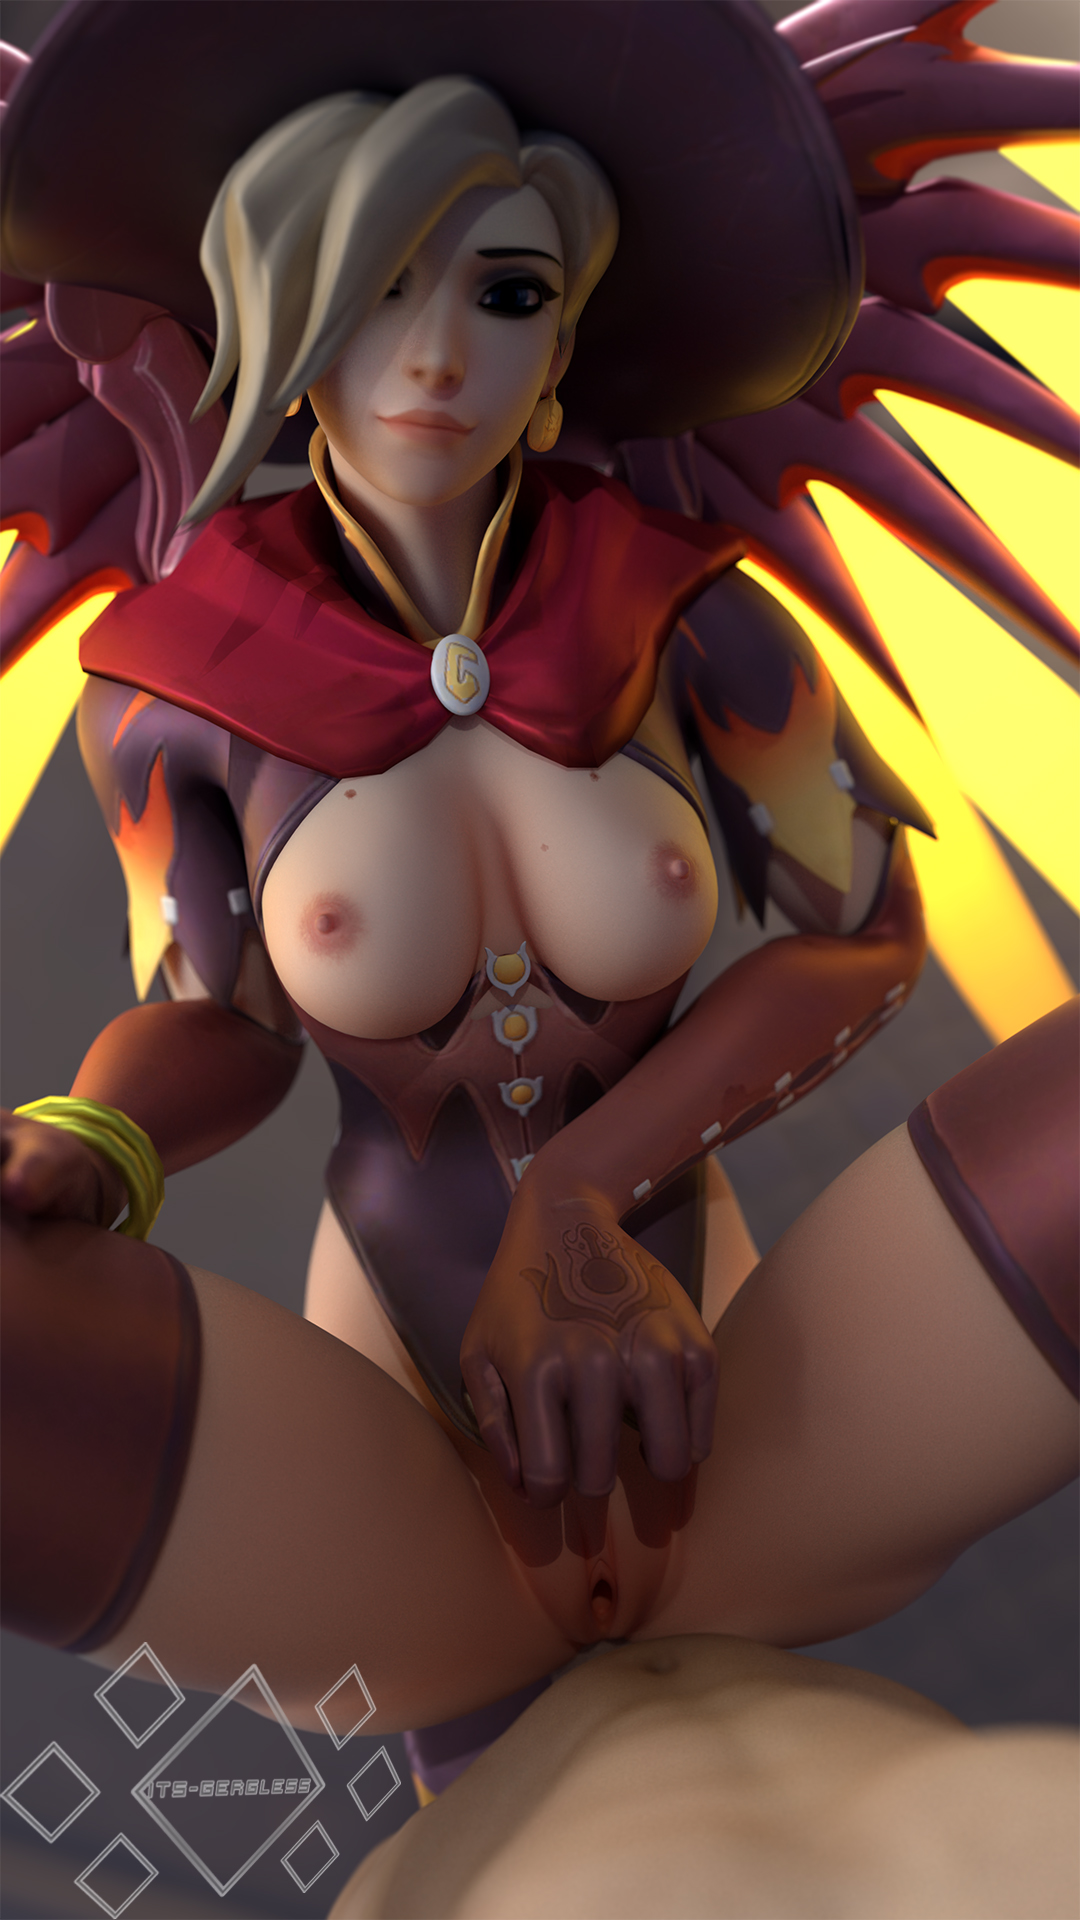 image 3d futanari collection 31